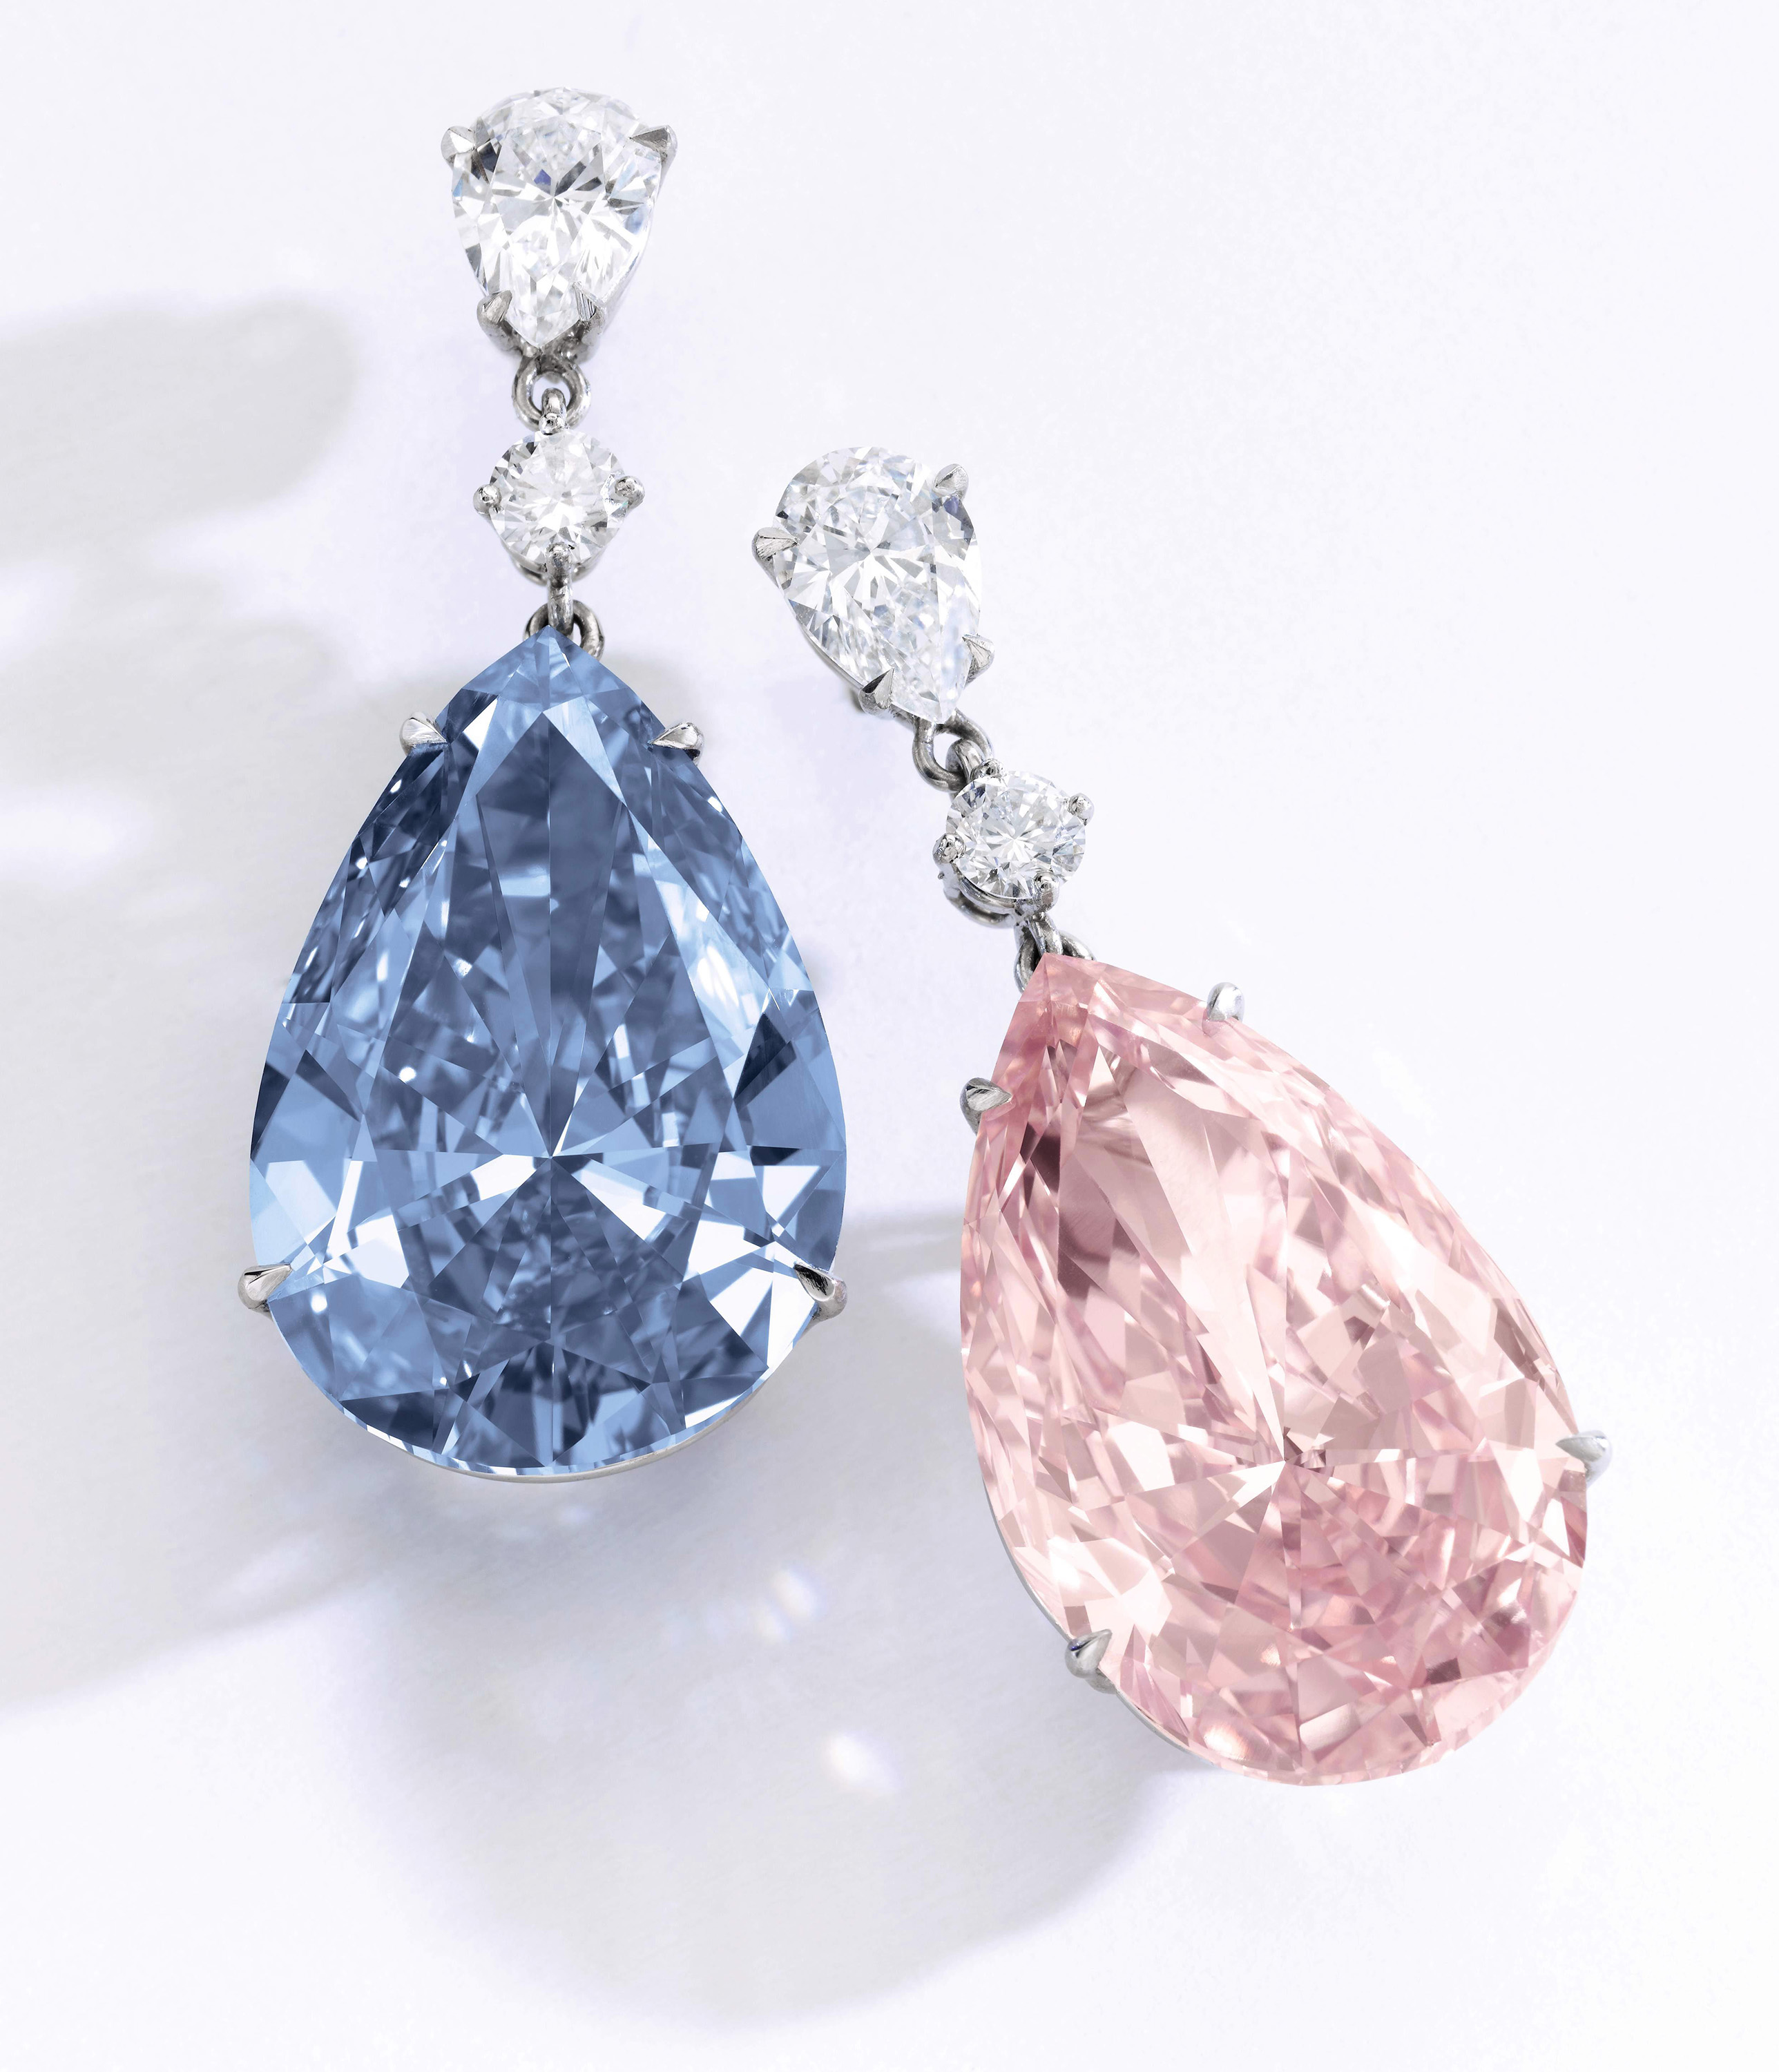 artemis apollo business blue pink at million and fetch most earrings diamond sotheby s world expensive oppenheimer